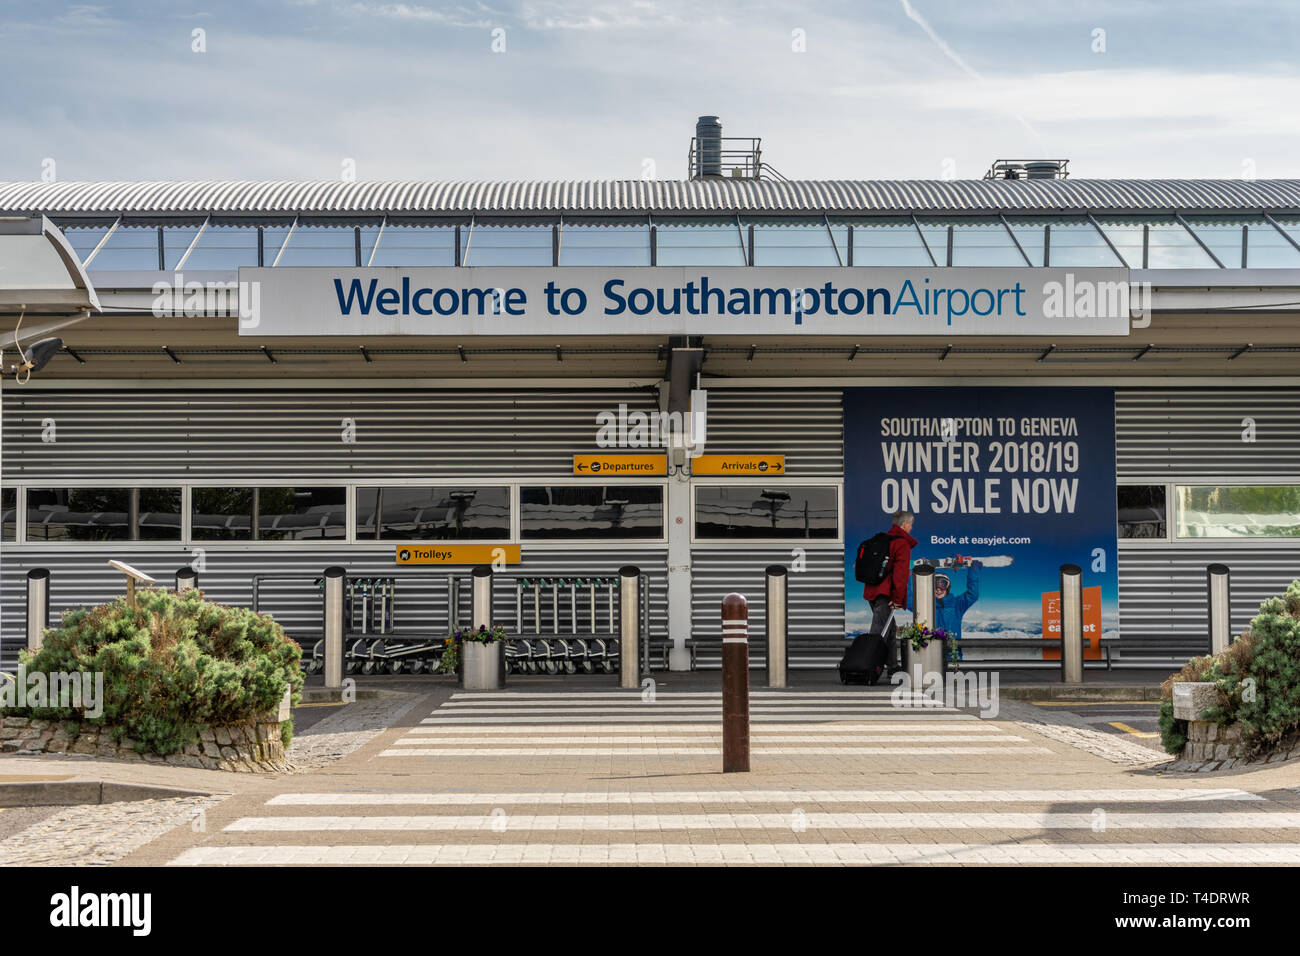 Entrance to Southampton Airport, a small International airport in Southampton, Hampshire, England, UK Stock Photo